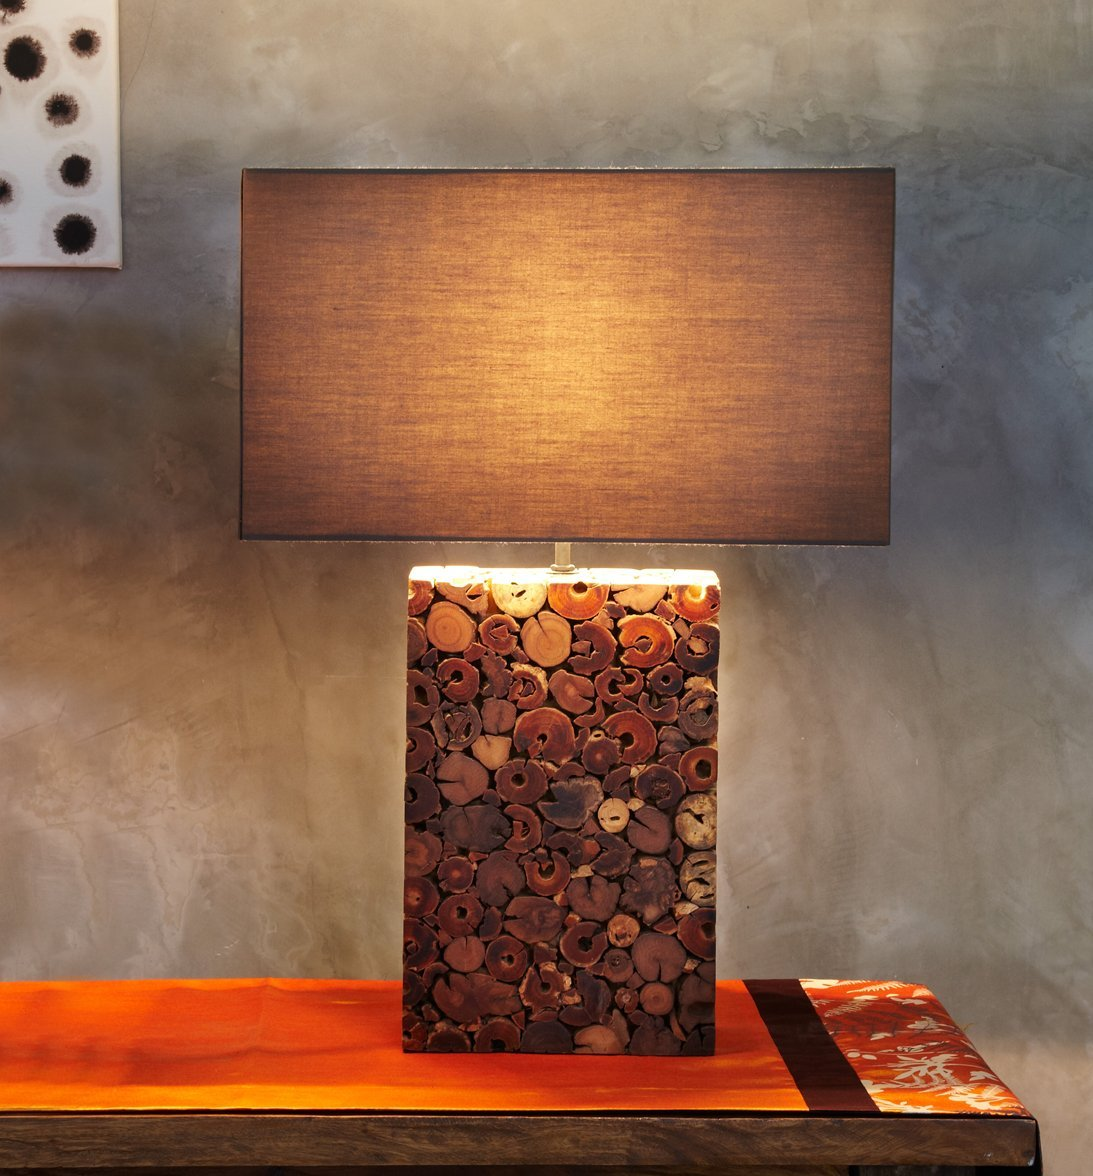 O'THENTIQUE Large Dark Driftwood Mosaic Table Lamp | Handmade Base with Brown Cotton Shade from Reclaimed Driftwood | Coastal Nautical Tropical Design for Beach House Cabin Cottage Bedroom Living